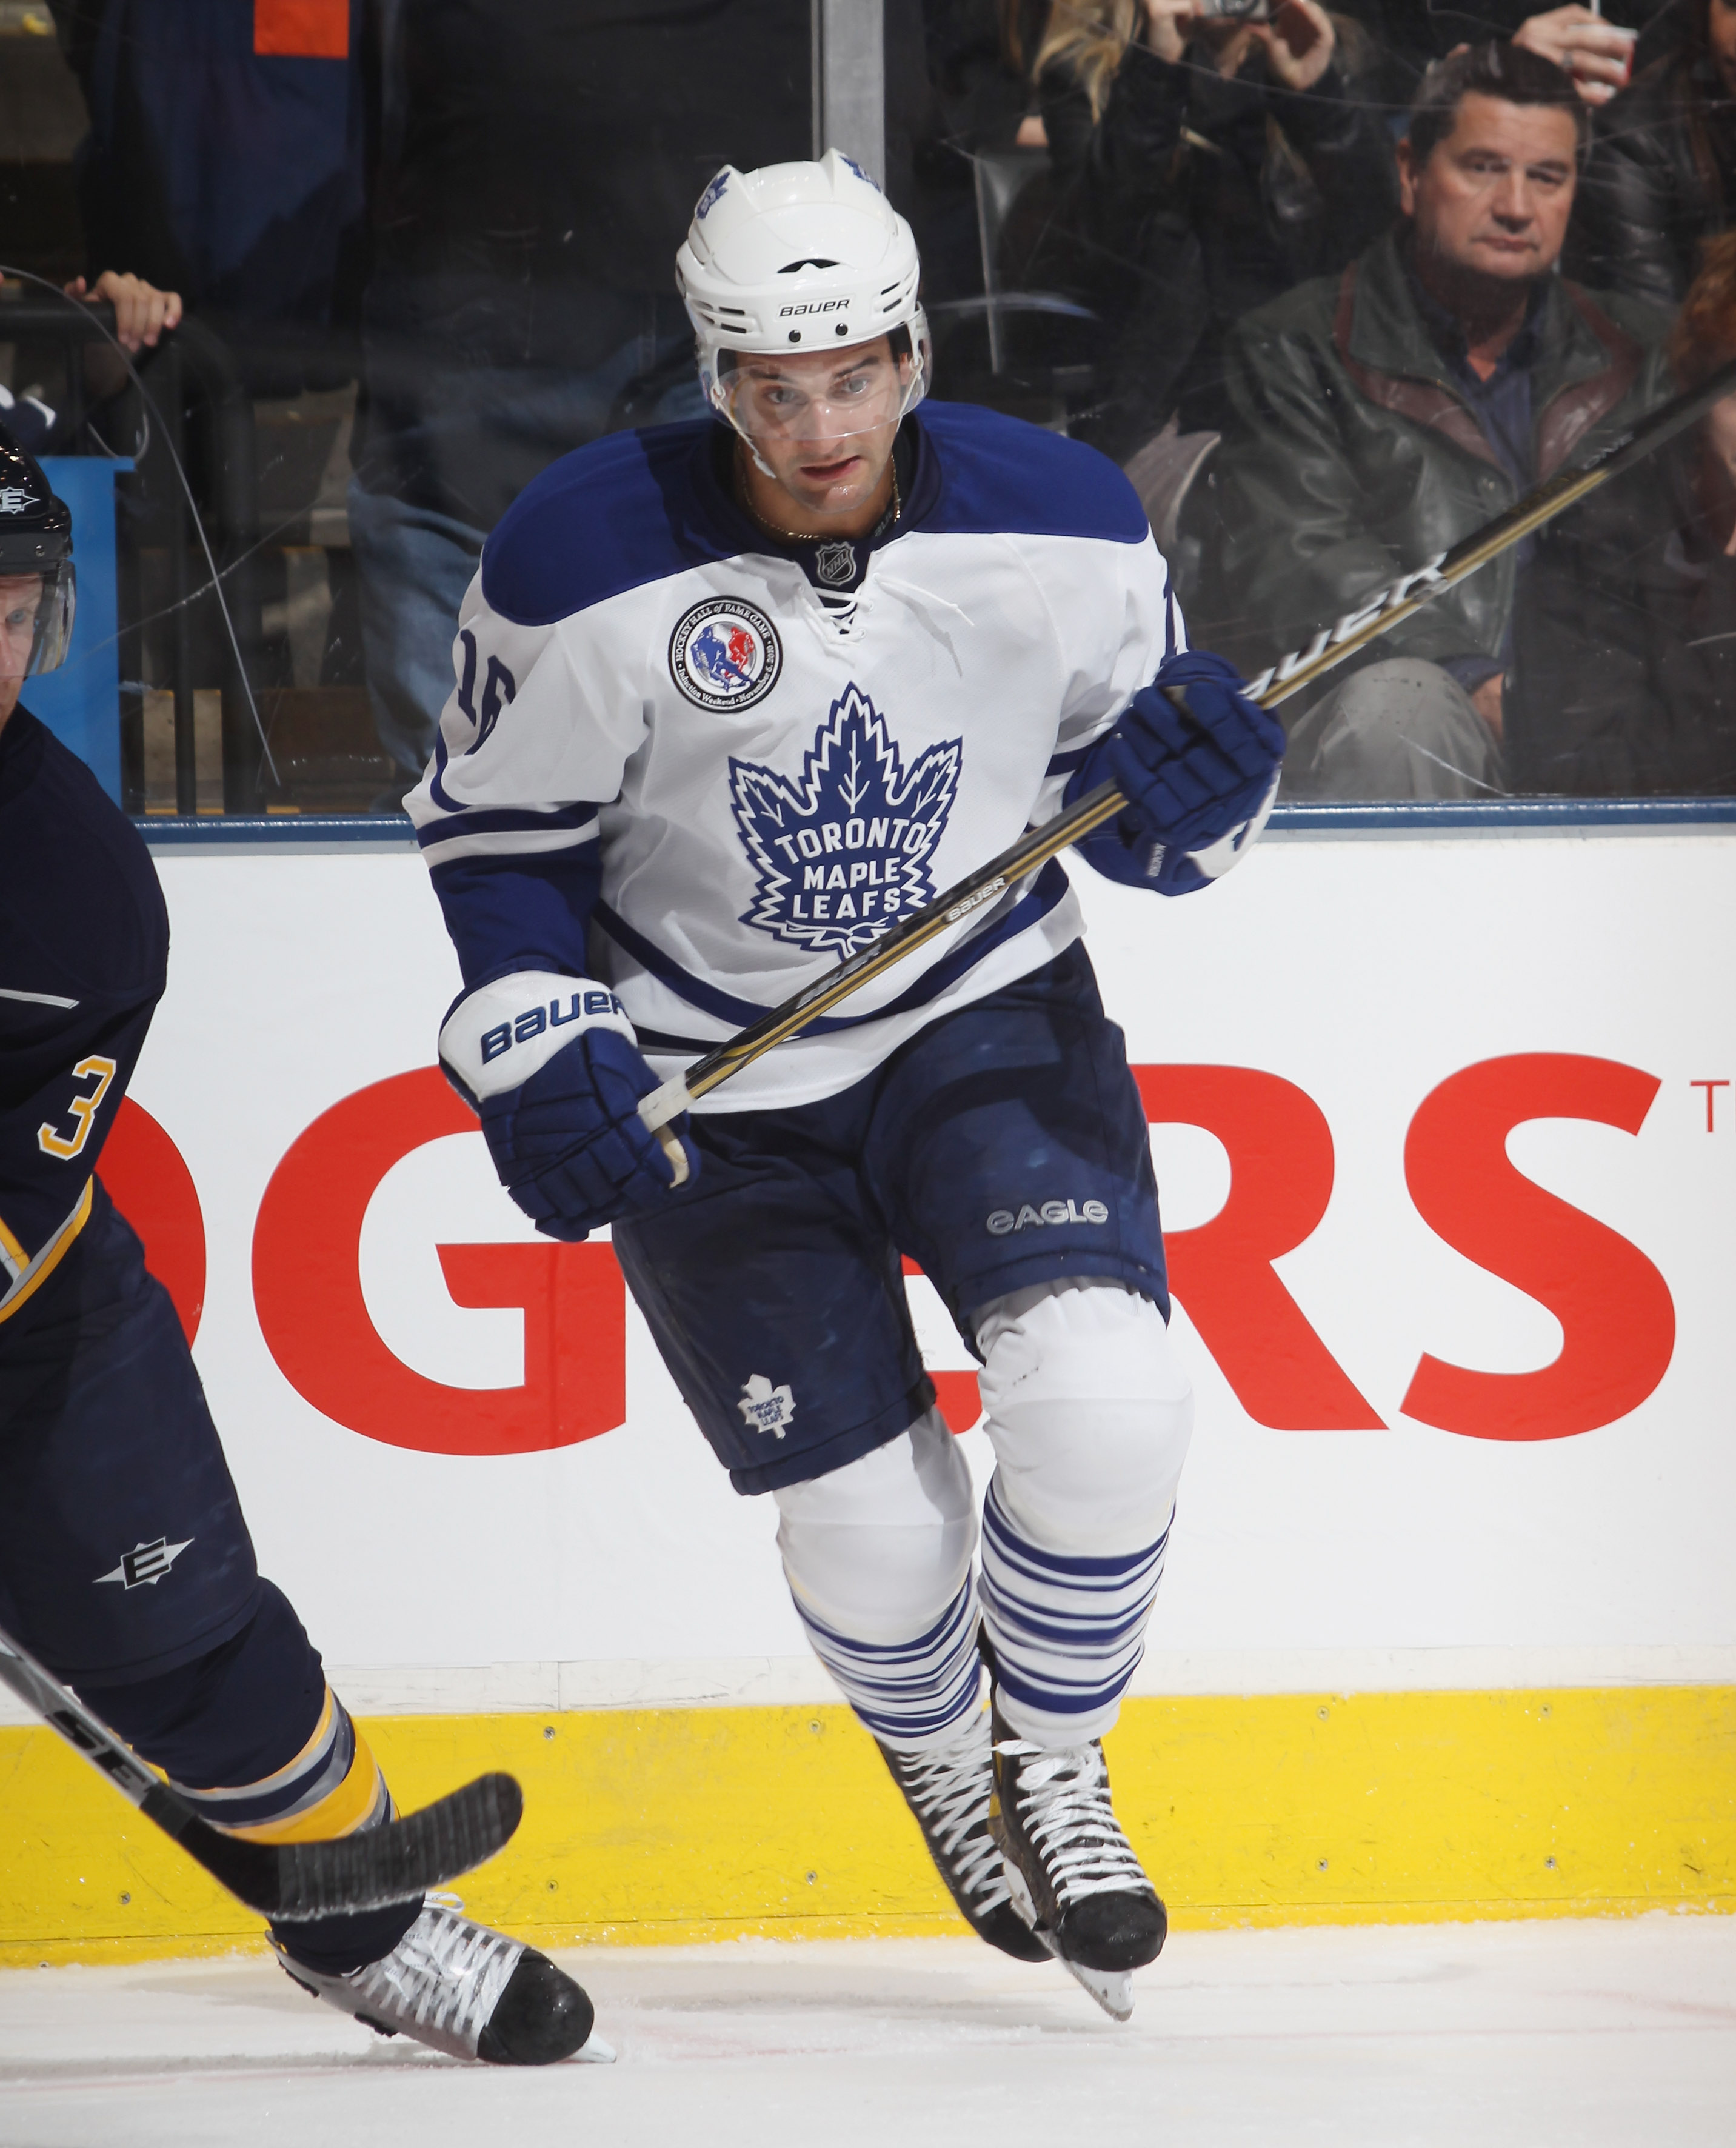 TORONTO, ON - NOVEMBER 06:  Clarke MacArthur #16 of the Toronto Maple Leafs skates against the Buffalo Sabres at the Air Canada Centre on November 6, 2010 in Toronto, Canada. The Sabres defeated the Maple Leafs 3-2.  (Photo by Bruce Bennett/Getty Images)